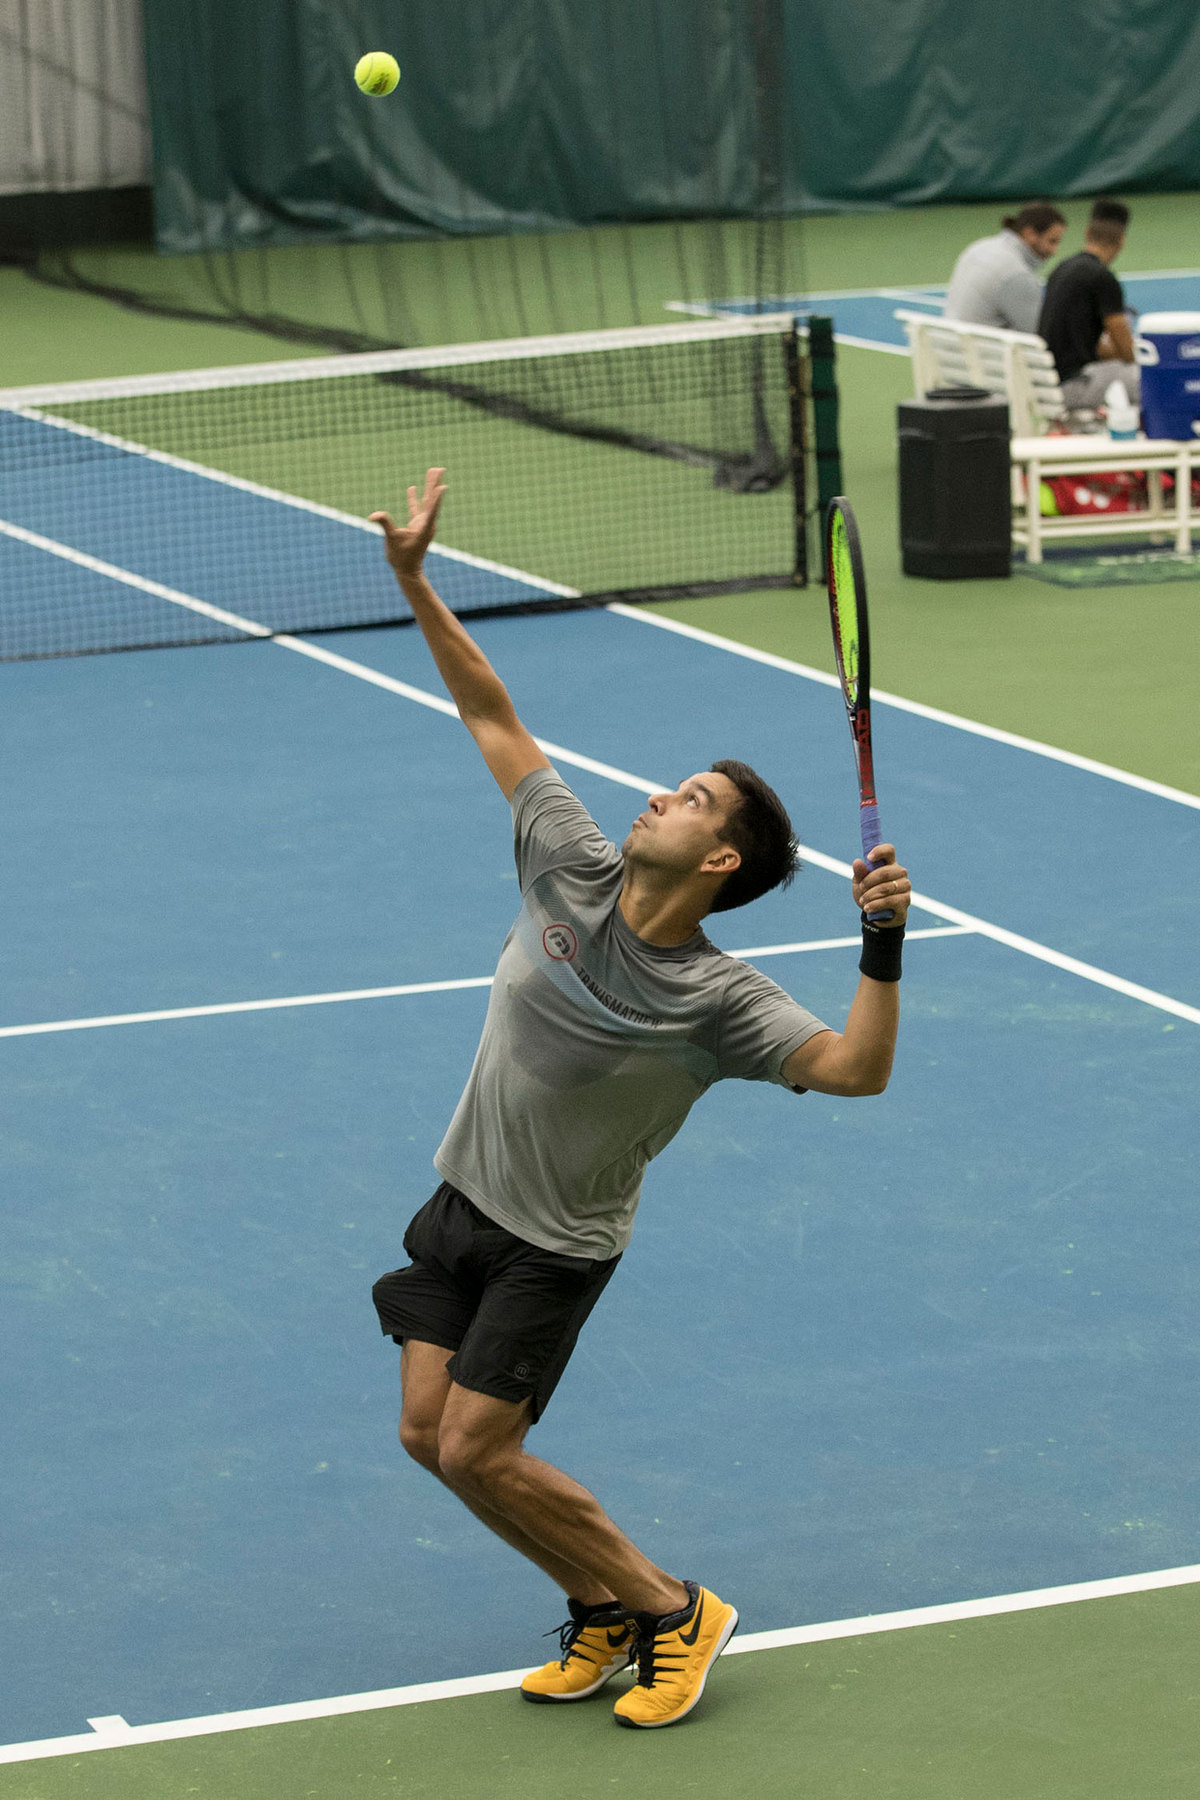 A strong serve has helped Huey have success as a professional.